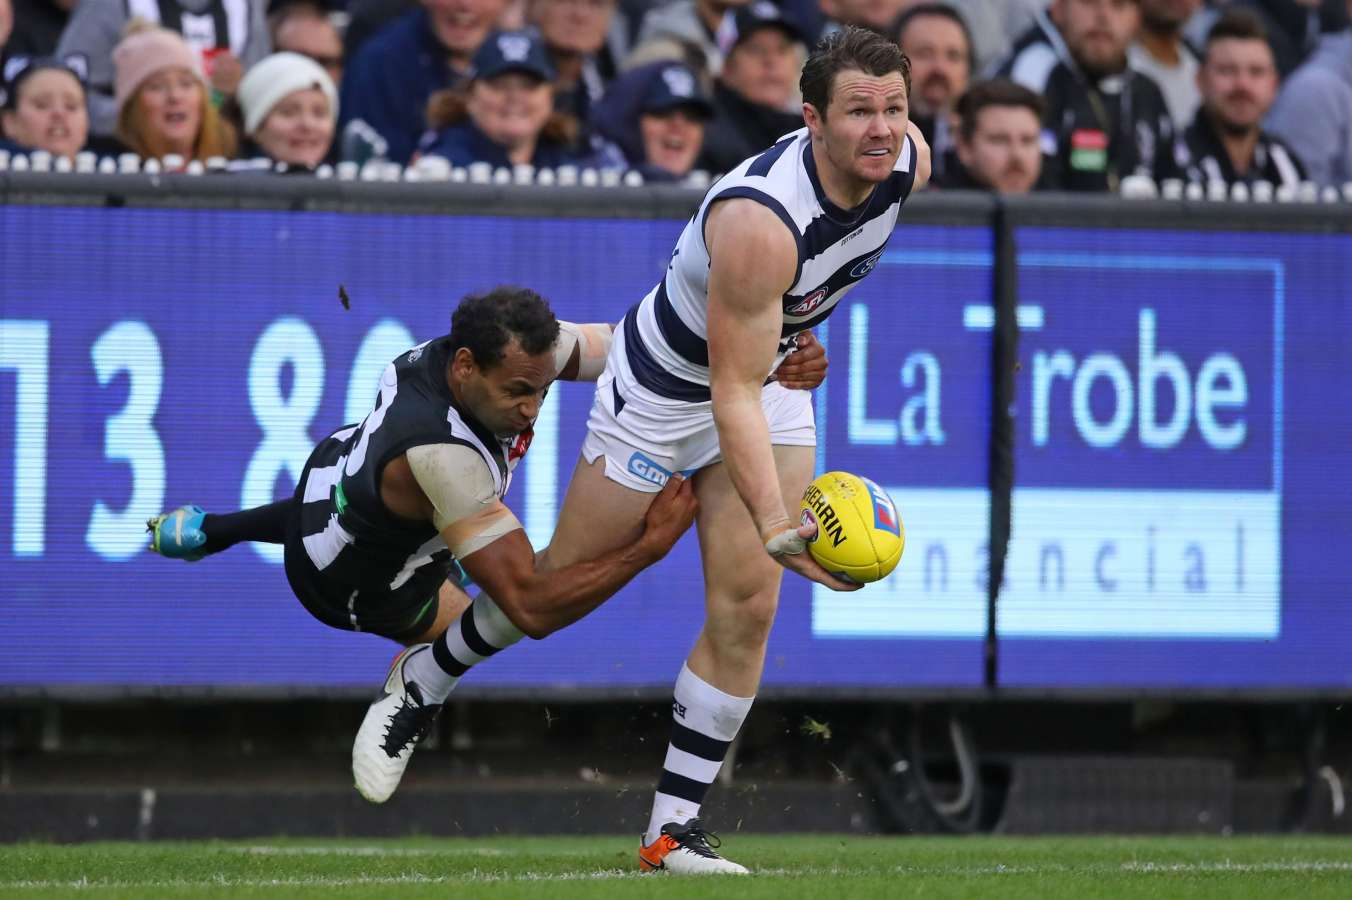 AFL SuperCoach: Round 9 best buys and strategy